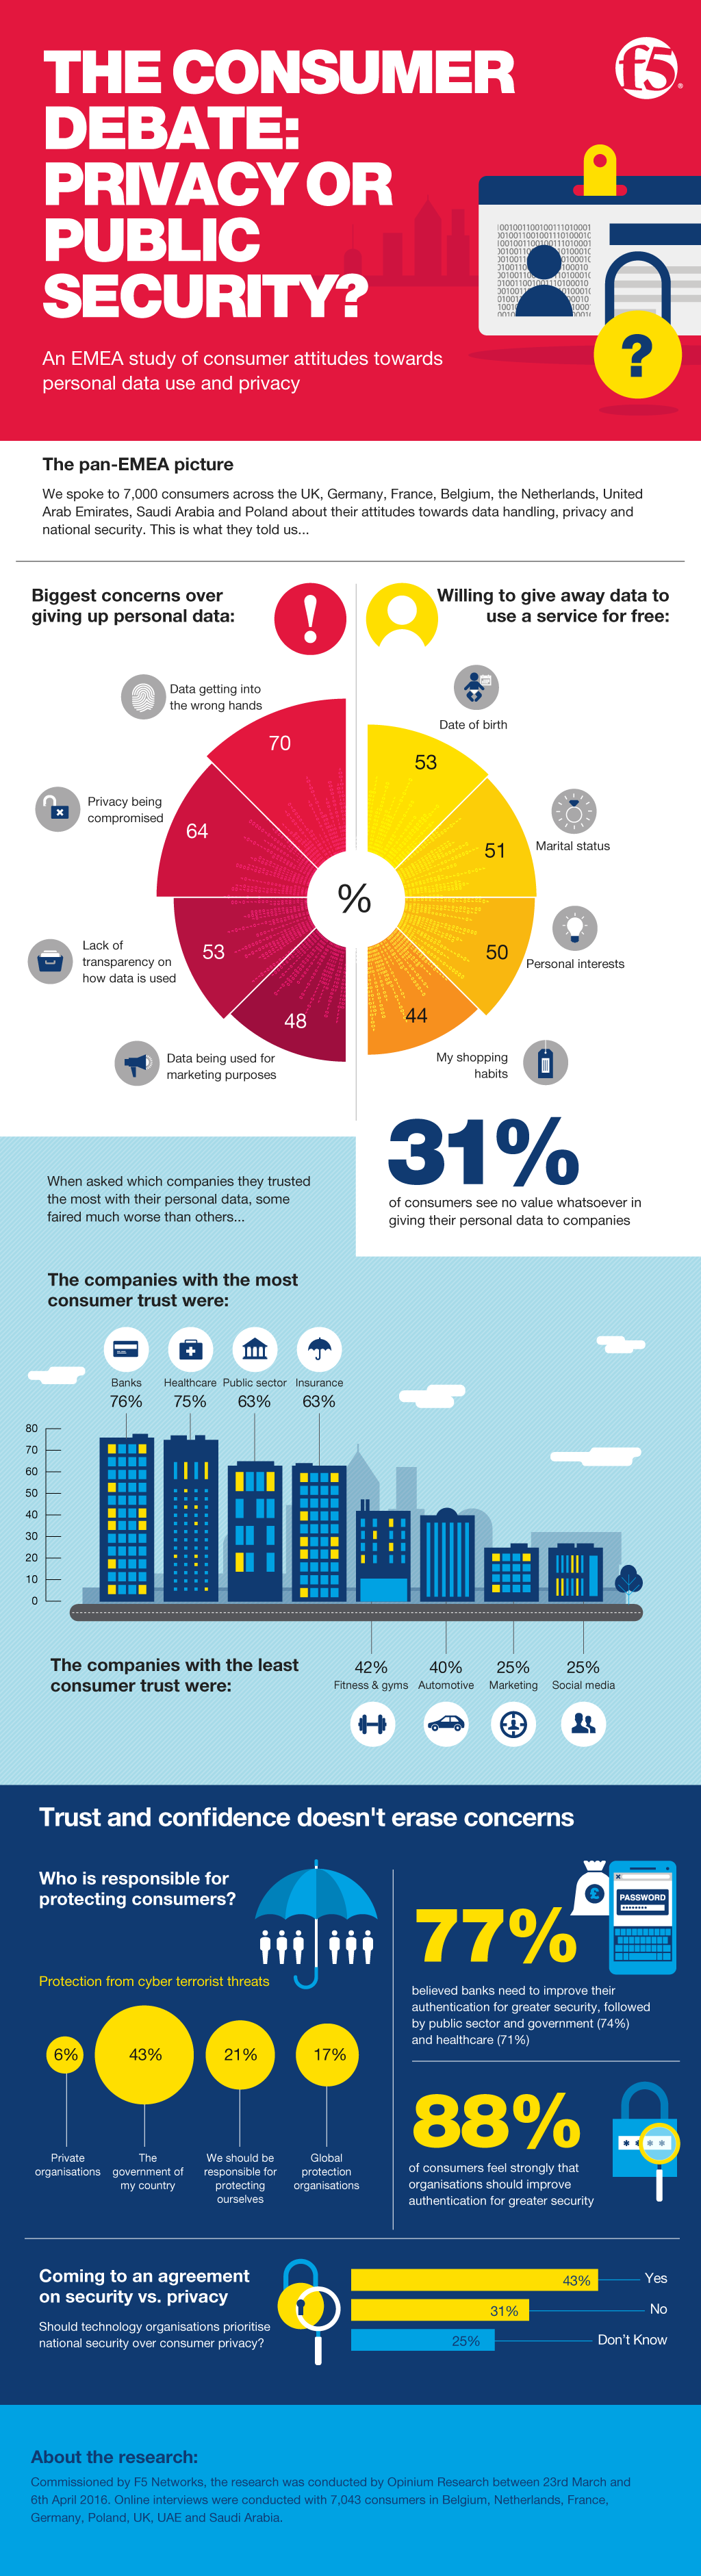 Infographic: A Consumer Debate: Privacy or Public Security